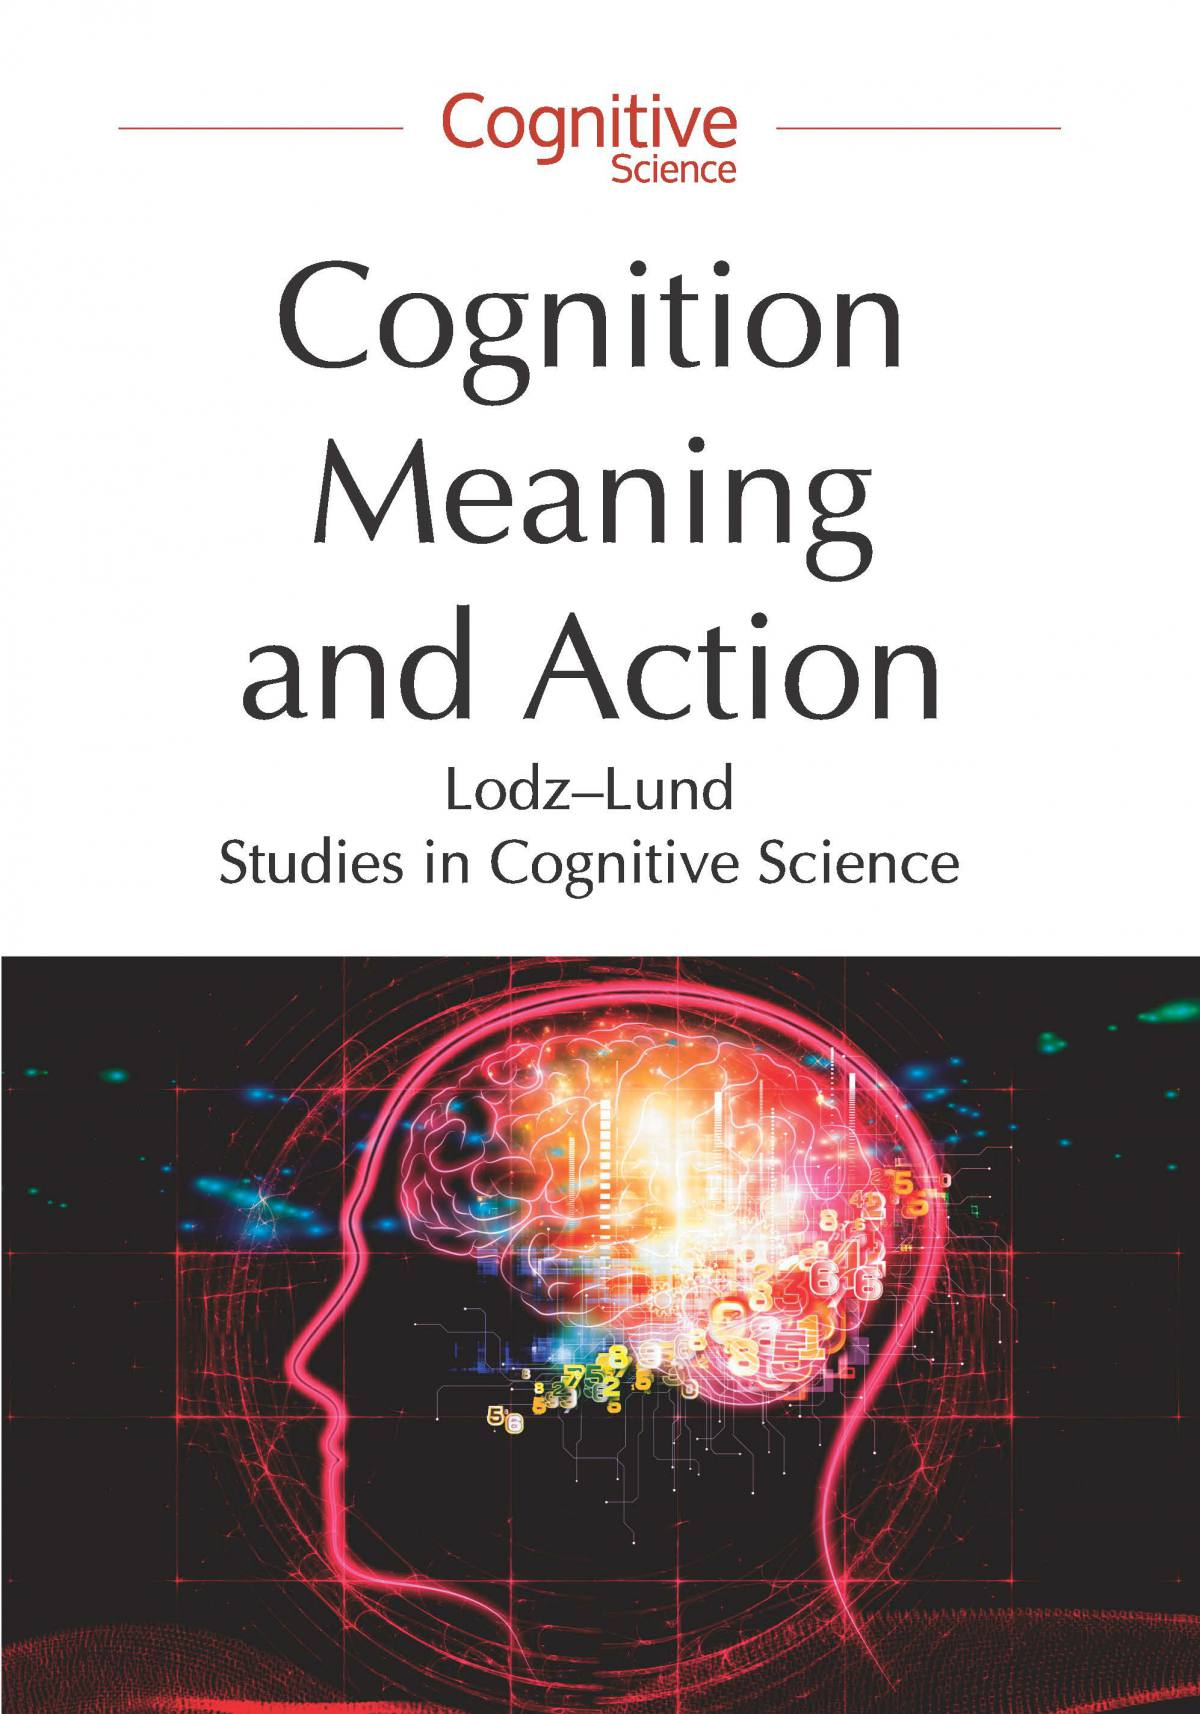 Cognition, Meaning and Action. Lodz-Lund Studies in Cognitive Science - Ebook (Książka PDF) do pobrania w formacie PDF